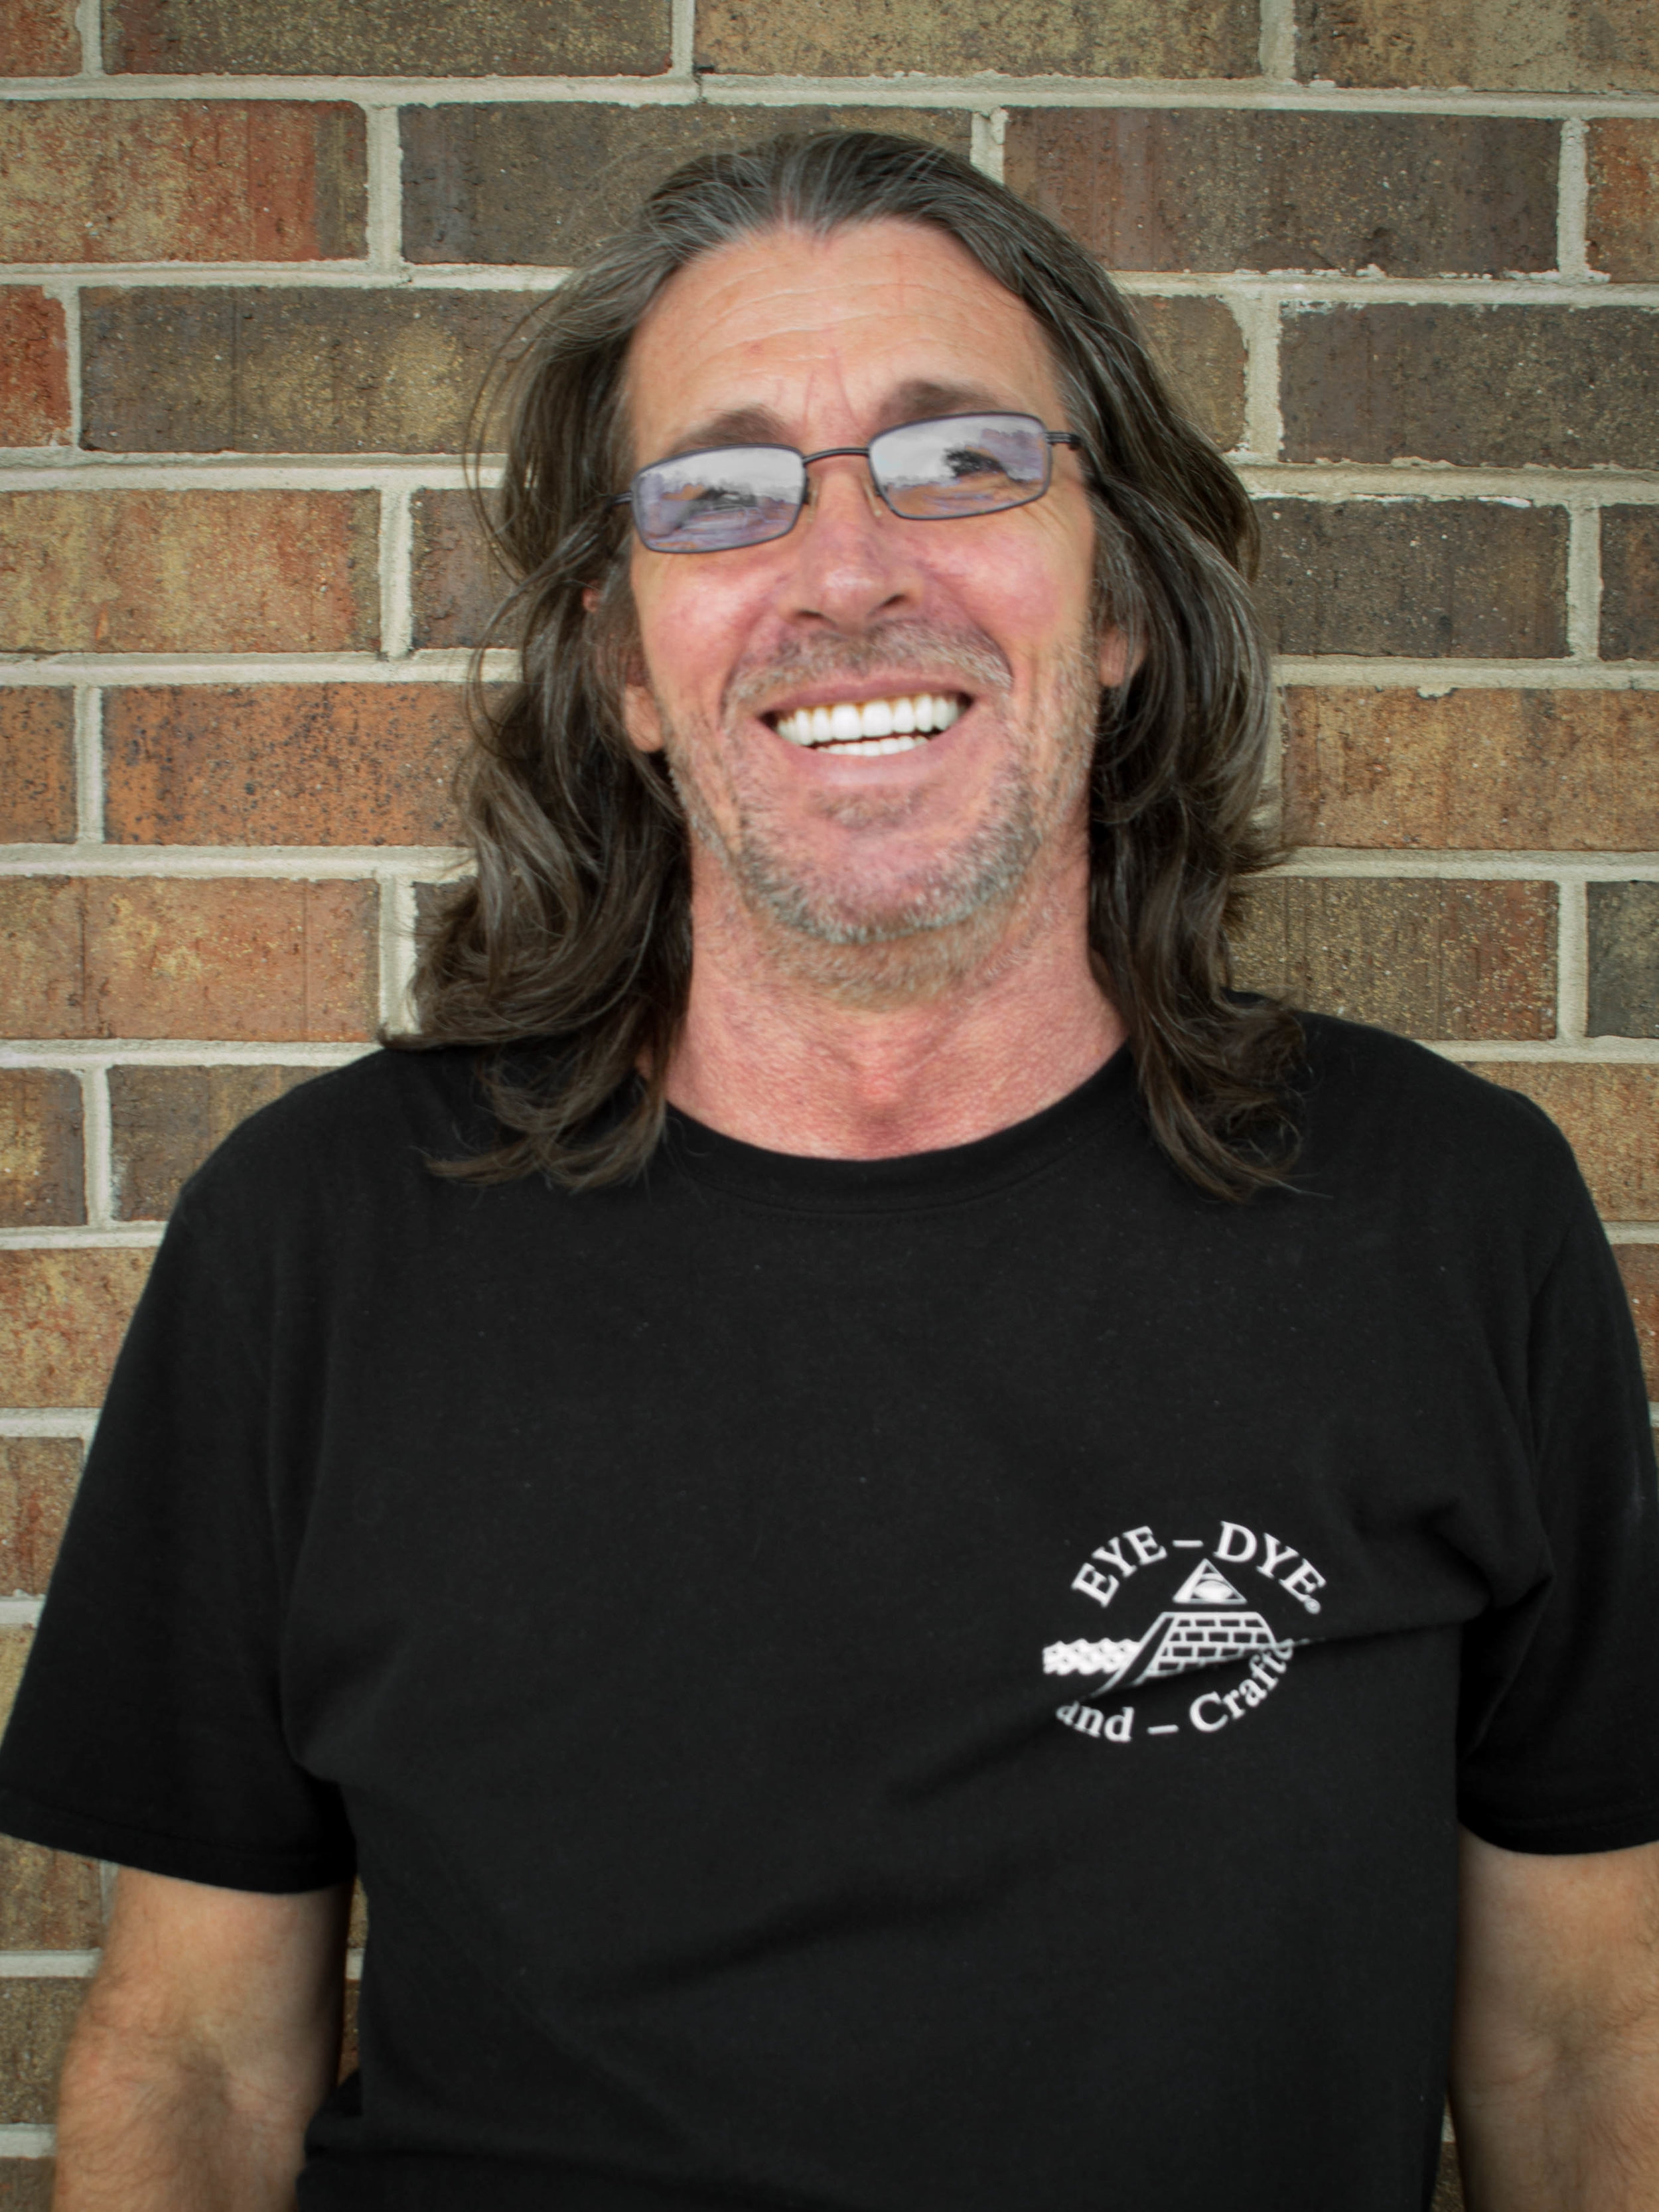 KEVIN DEMPSEY - PRINT PRODUCTION MANAGER